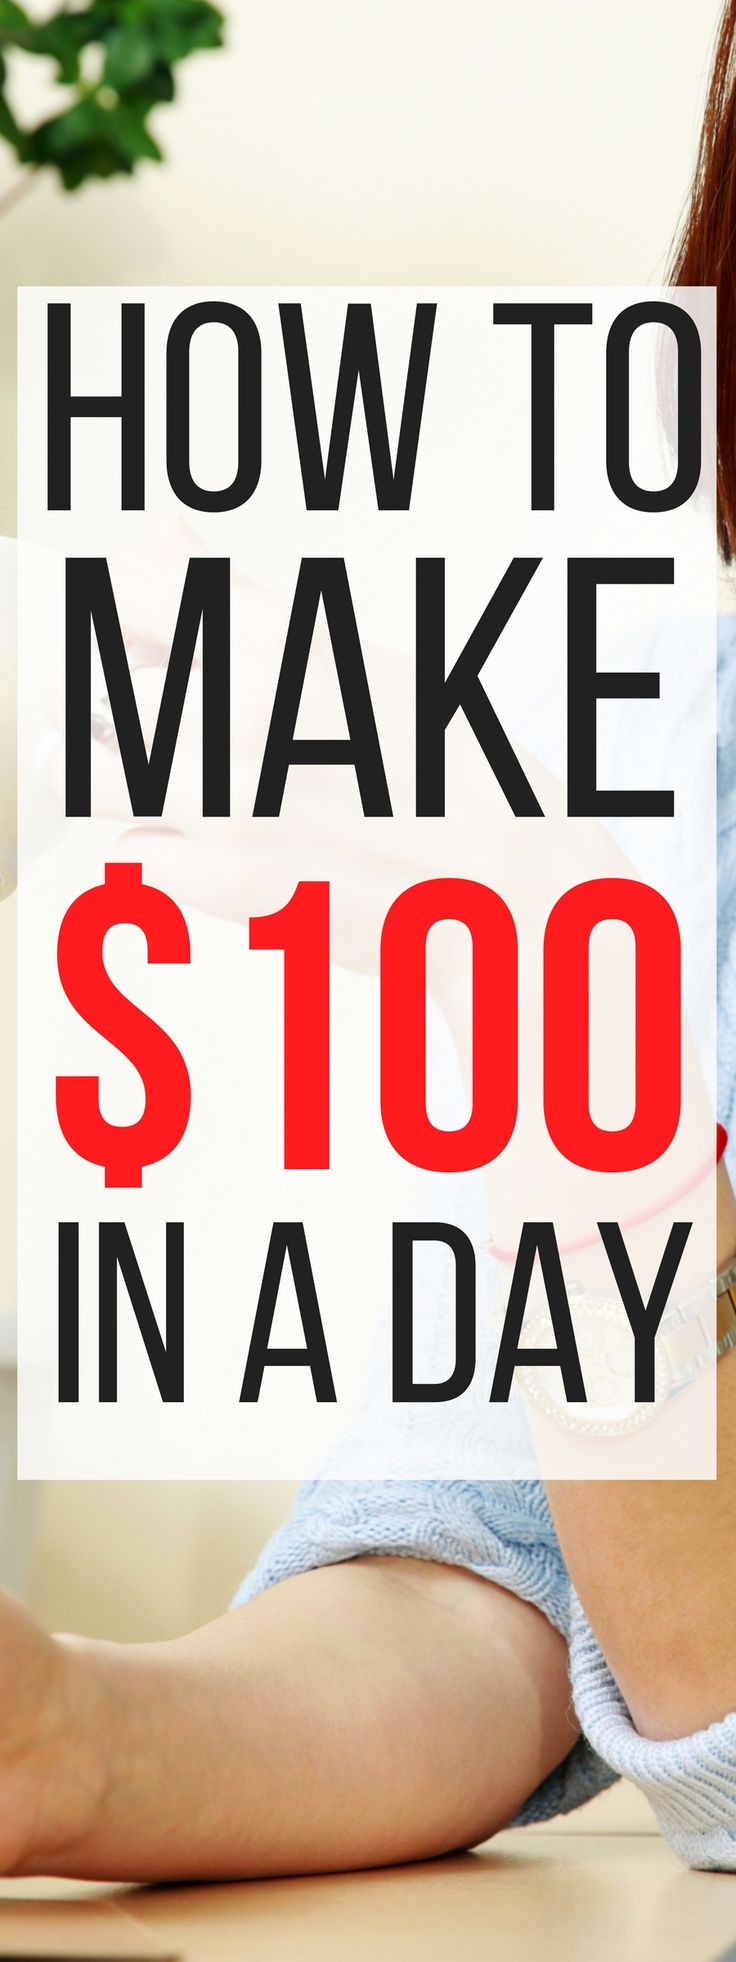 These 6 ways to make an extra $100 in a day are THE BEST! I'm so glad I found this, now I can make extra money in my spare time with these ideas. Pinning for sure! #money #MakeMoneyOnline #makemoneyfromhome #makemoneyfast #waystomakemoney #extramoney